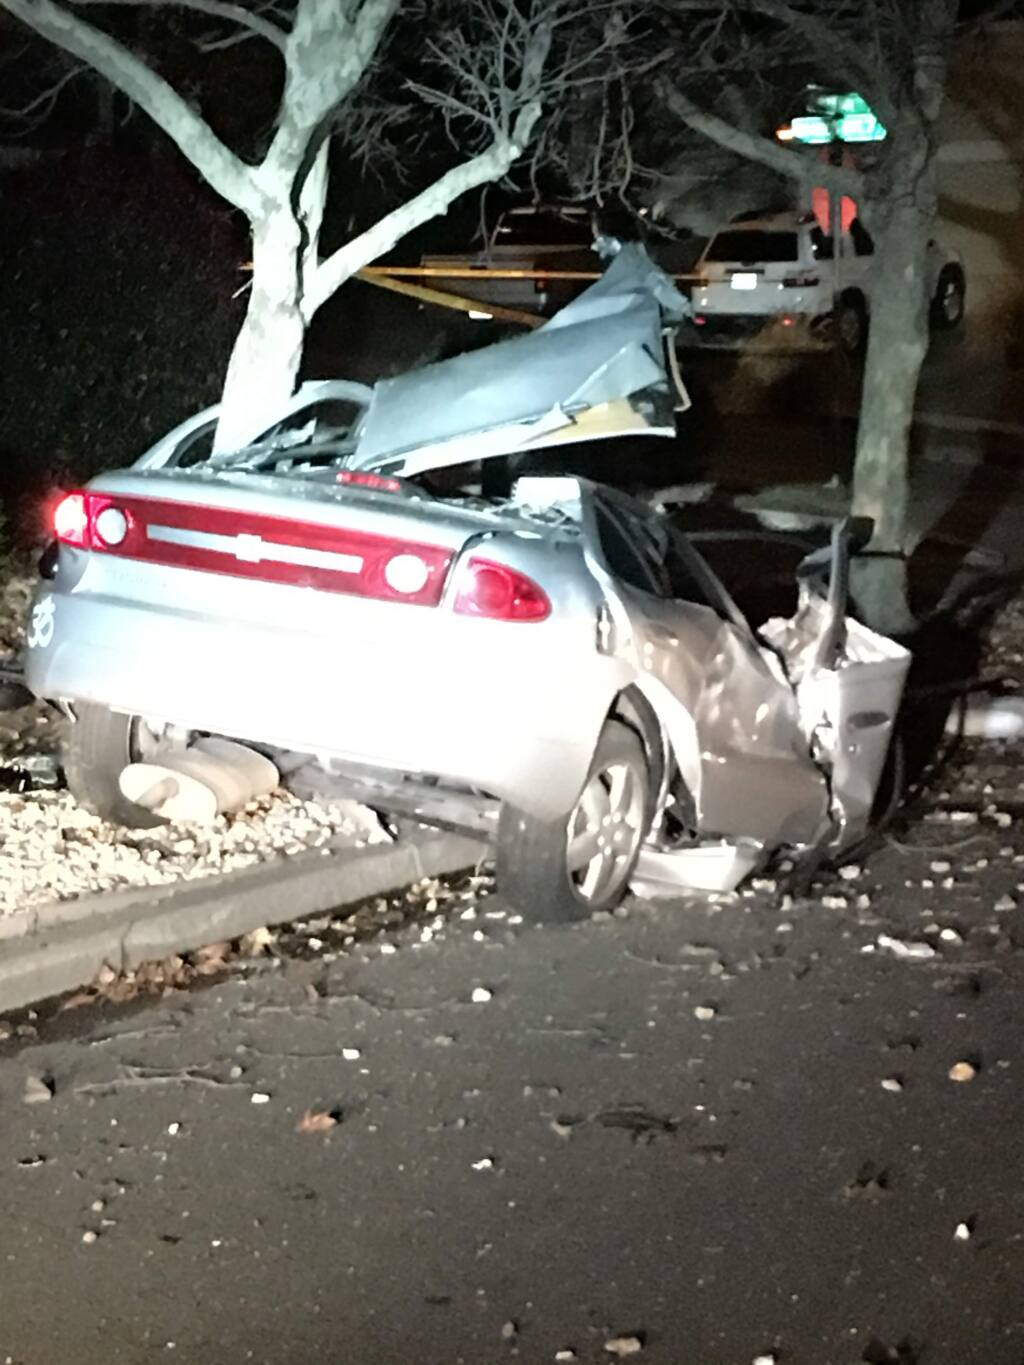 An 18-year-old woman was killed and the driver arrested after a suspected DUI crash in east Santa Rosa on Sunday, Jan. 1, 2017. (COURTESY OF SANTA ROSA POLICE DEPARTMENT)